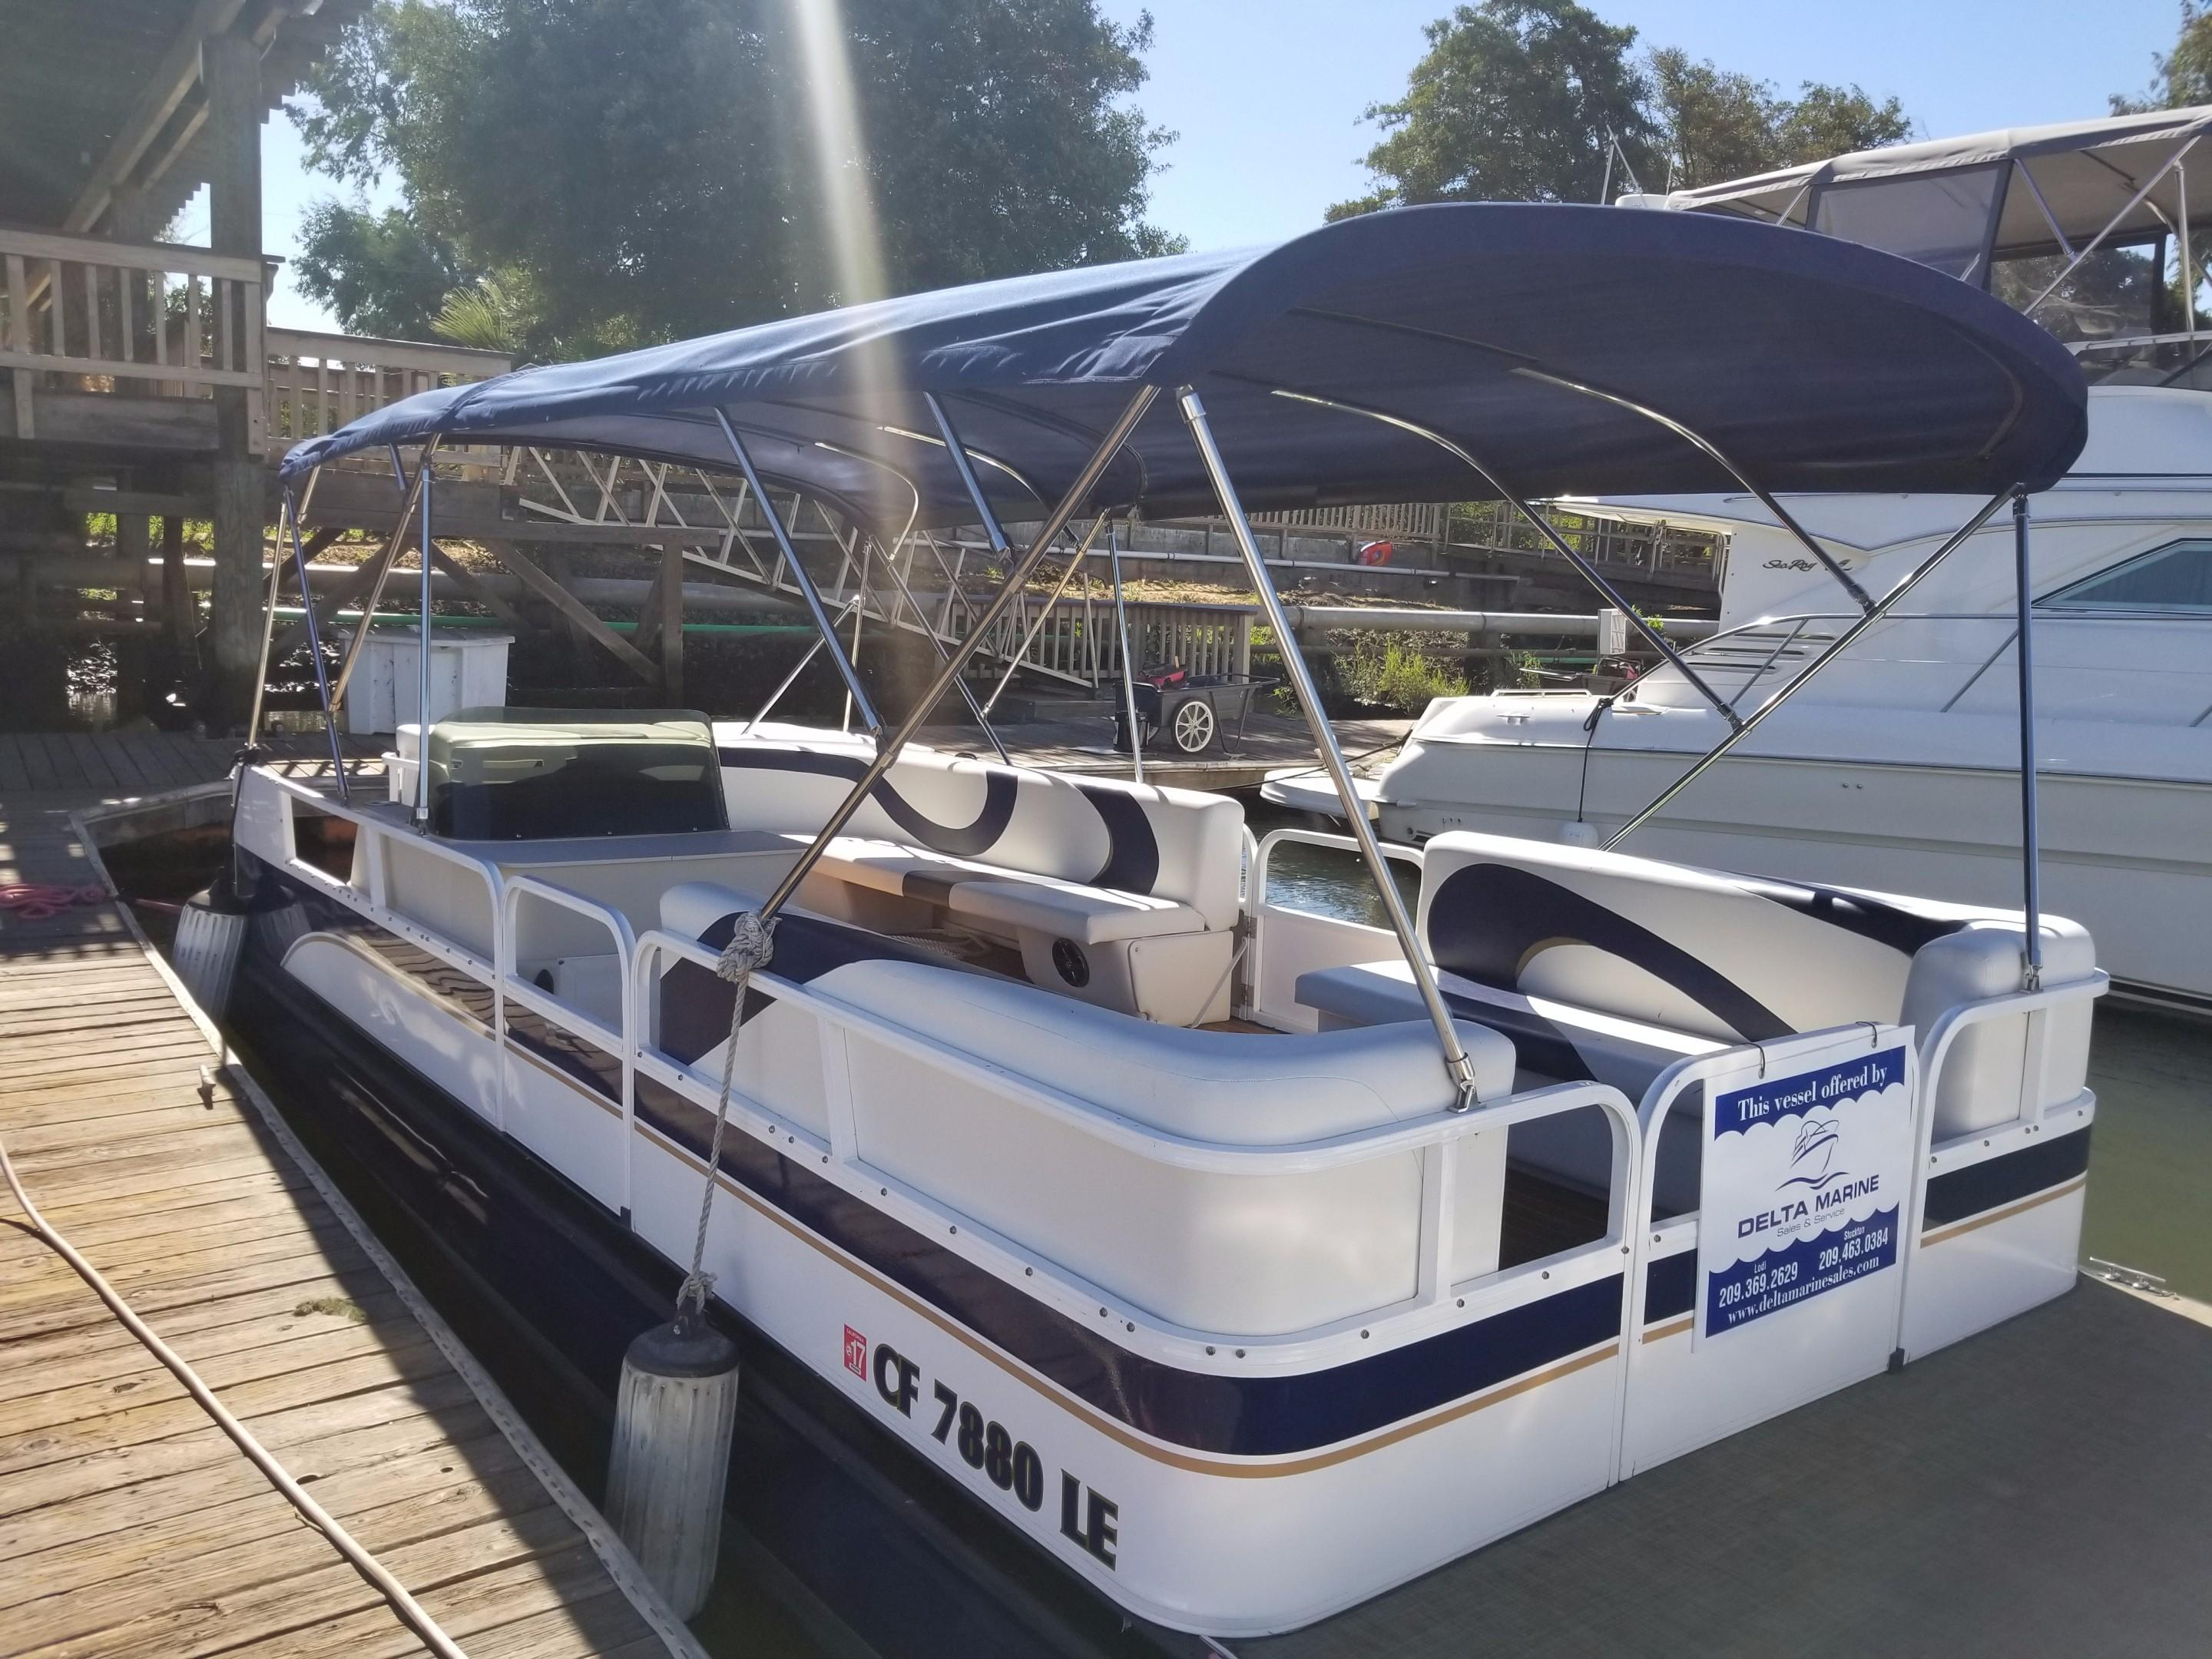 Craigslist California Boats For Sale - Year of Clean Water